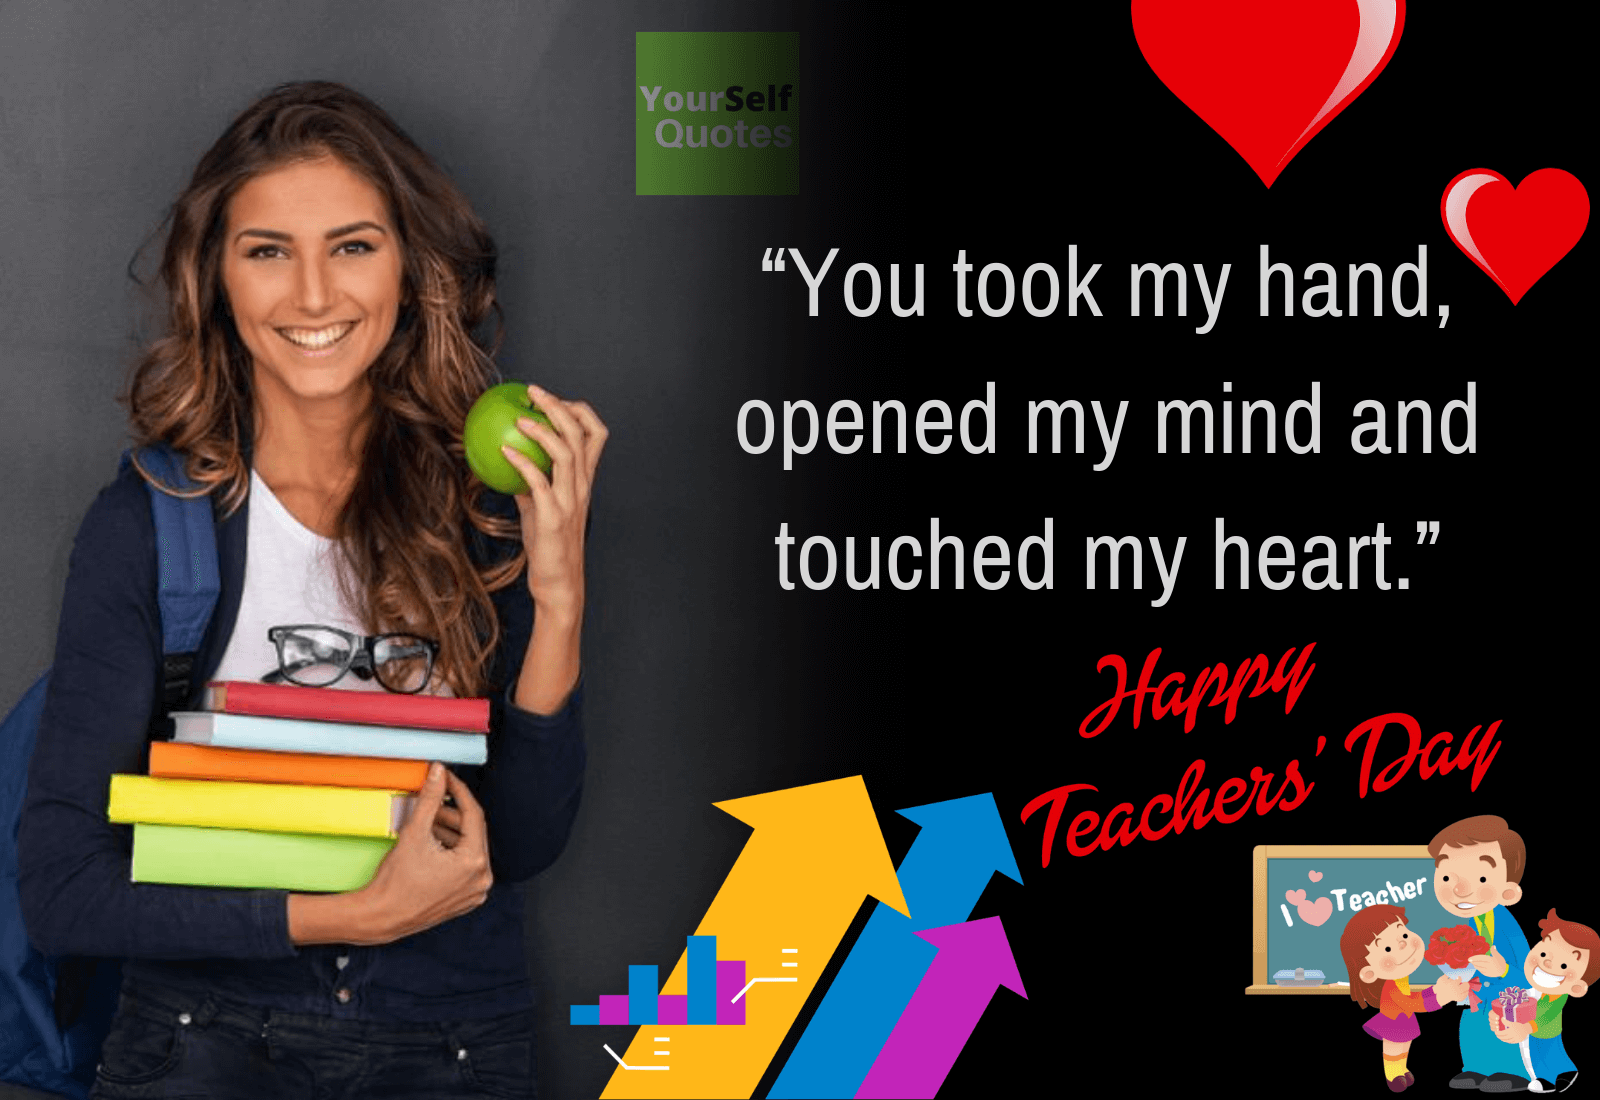 Happy Teacher Day Poster